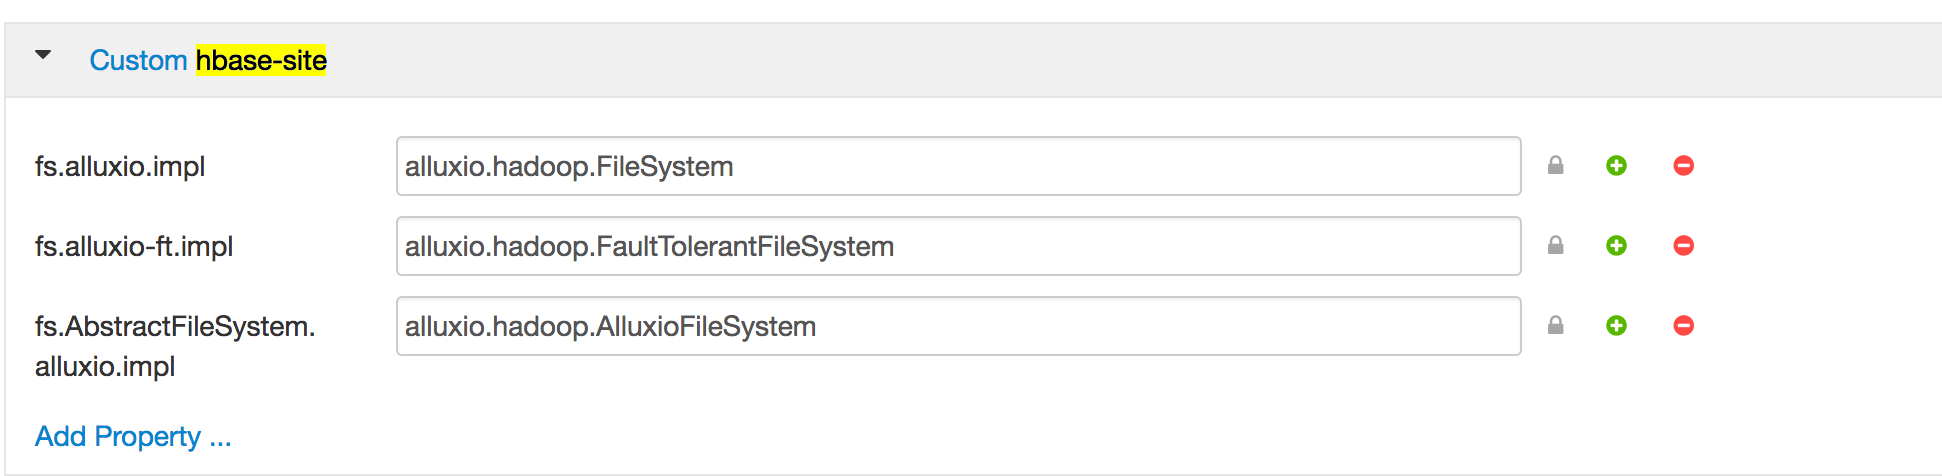 Integrating HDP Compute Frameworks with Alluxio - Alluxio v2.2 (stable) Documentation